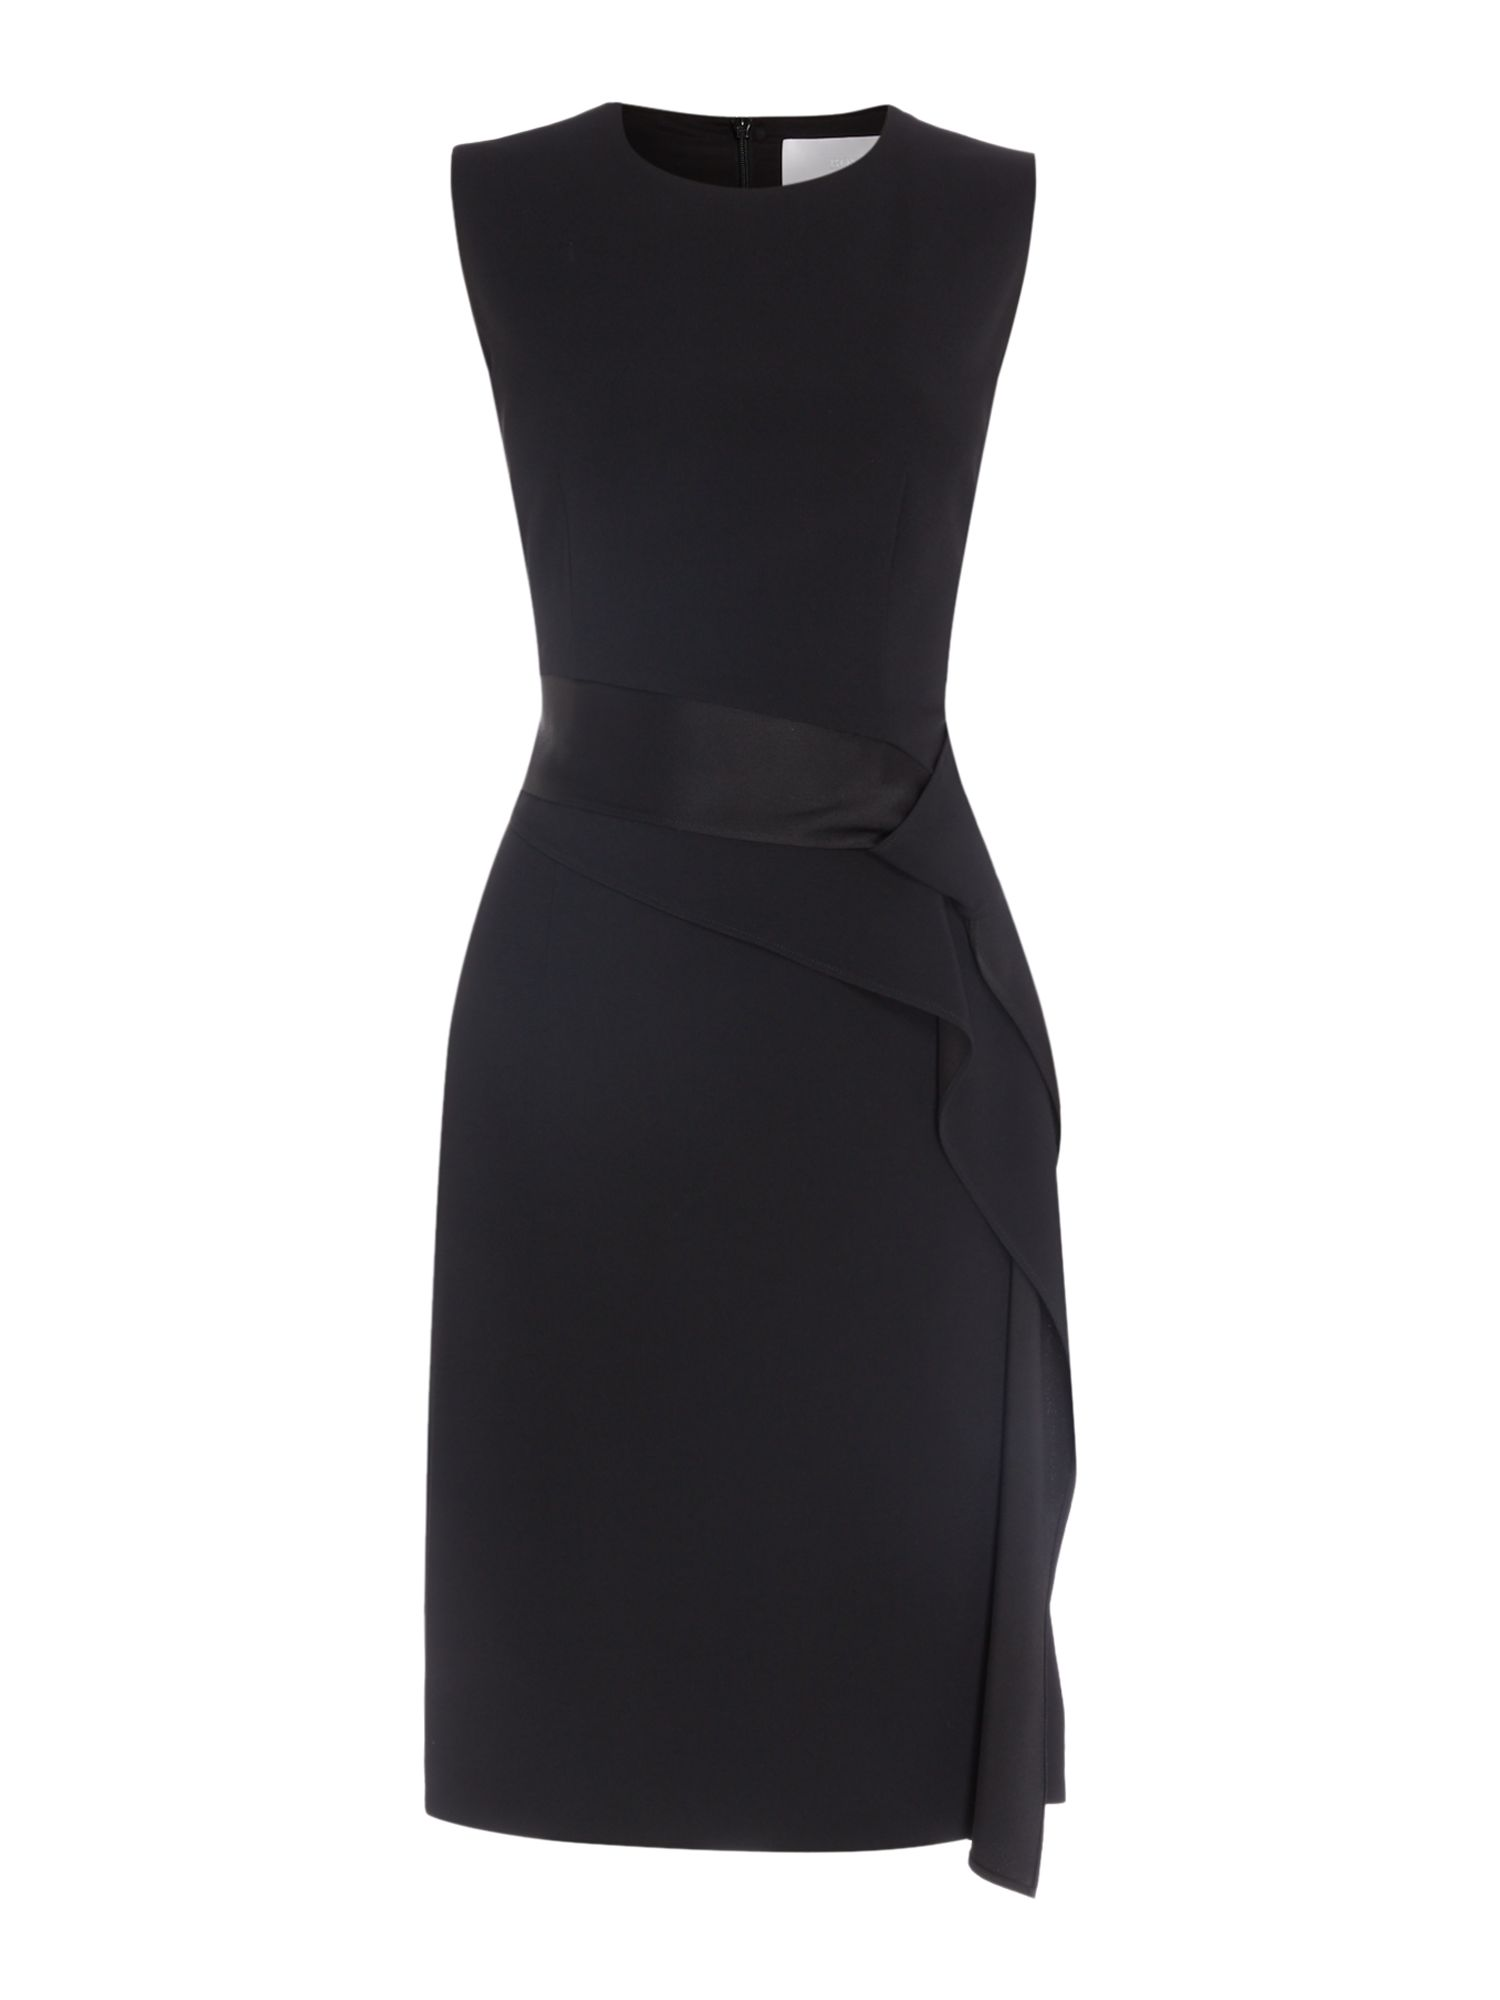 Hugo Boss Disalana sach ruffel dress, Black